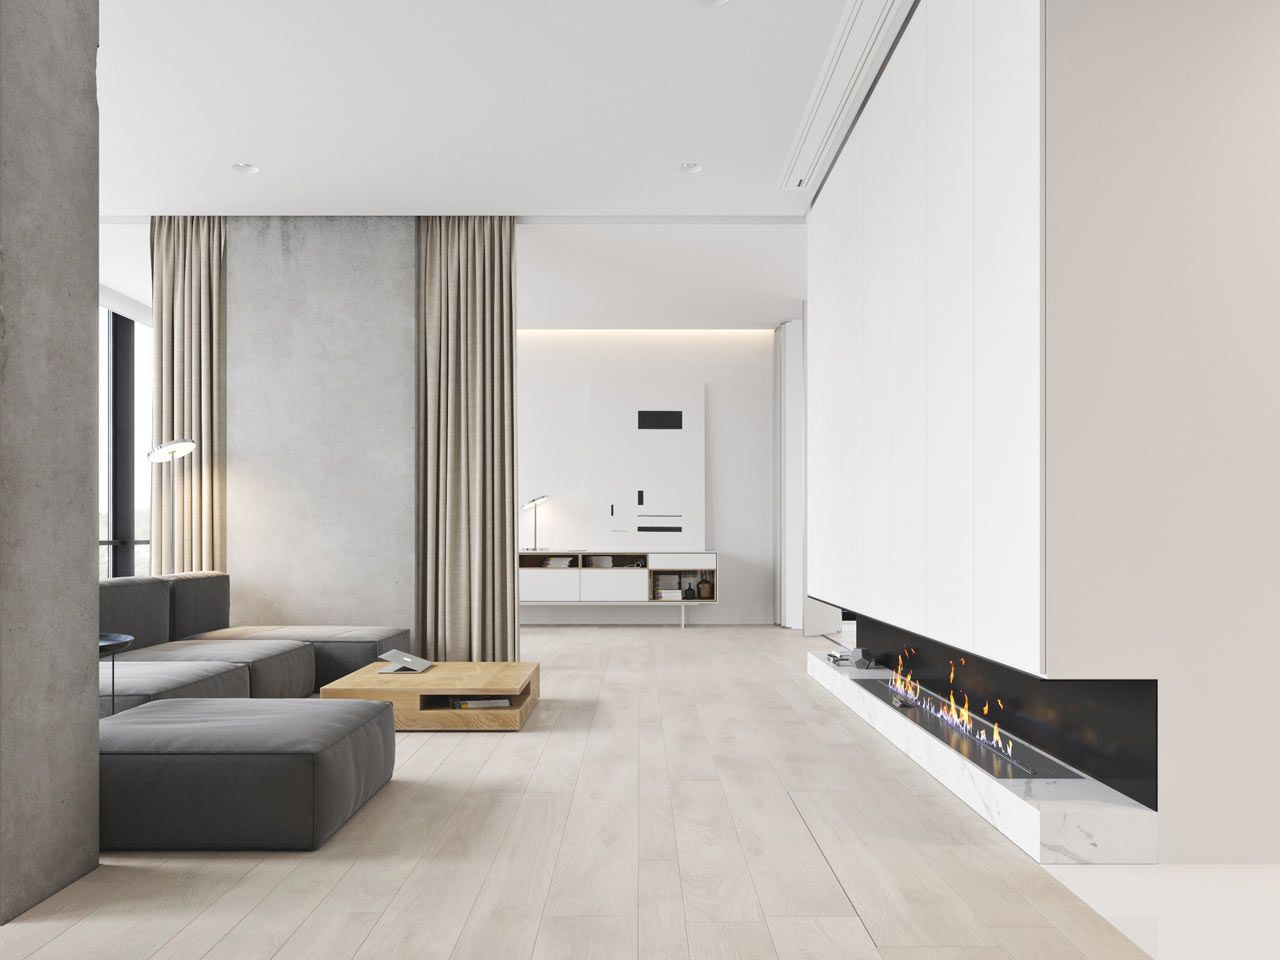 A Minimalist Bachelor Apartment in Montenegro | Kamin design ...